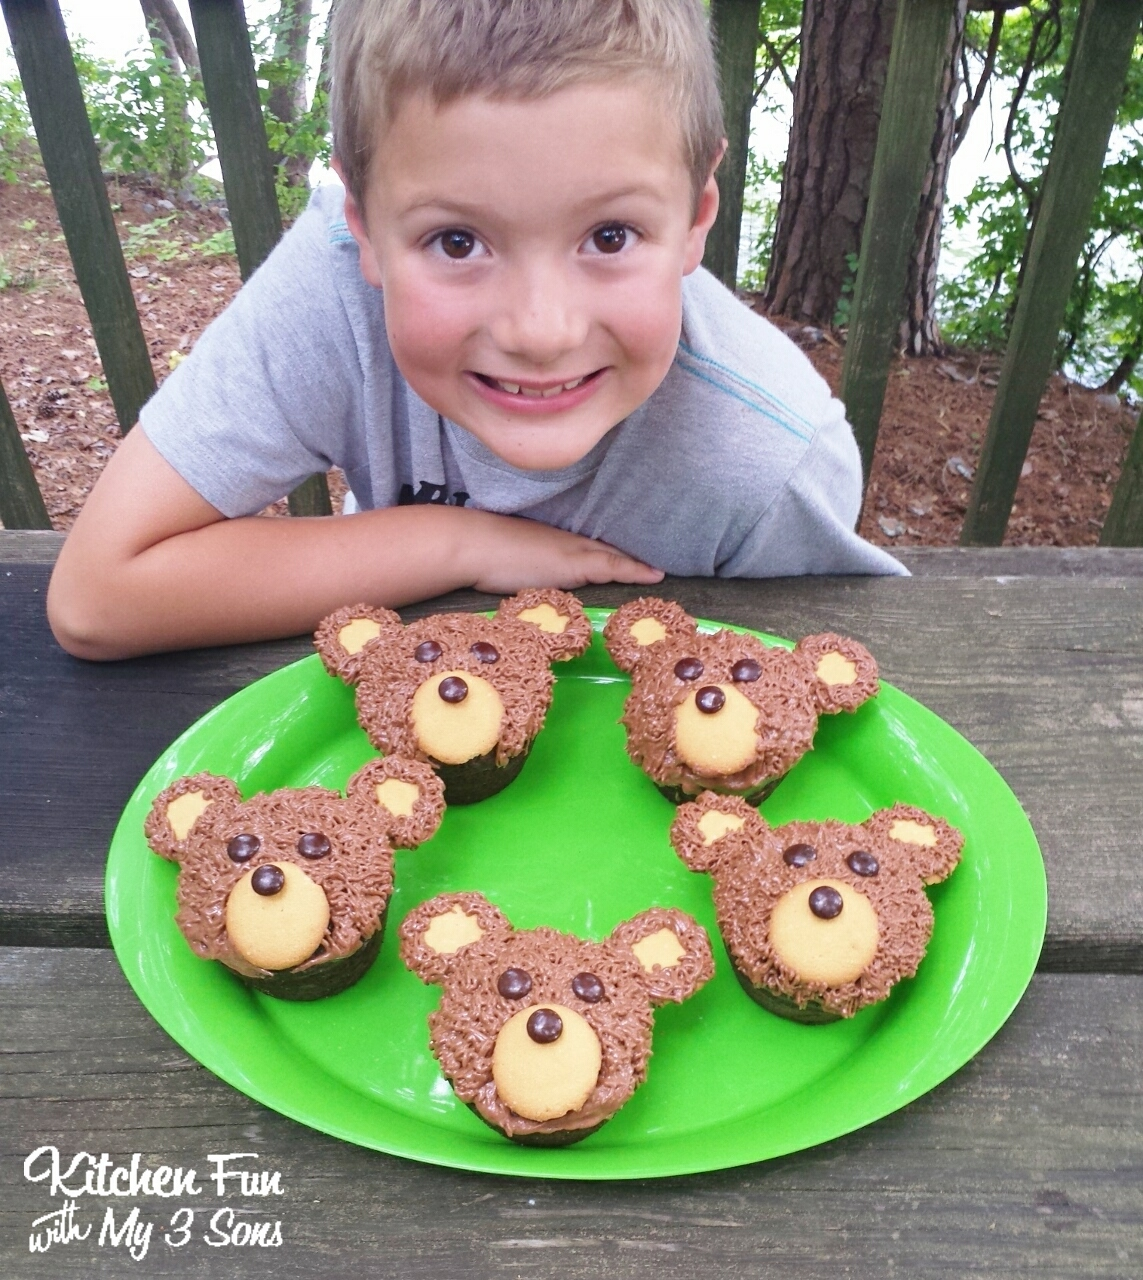 Fun Camping Ideas For Kids Camping Recipes And Fun: Kitchen Fun With My 3 Sons: Camping Fun Food & Craft Ideas